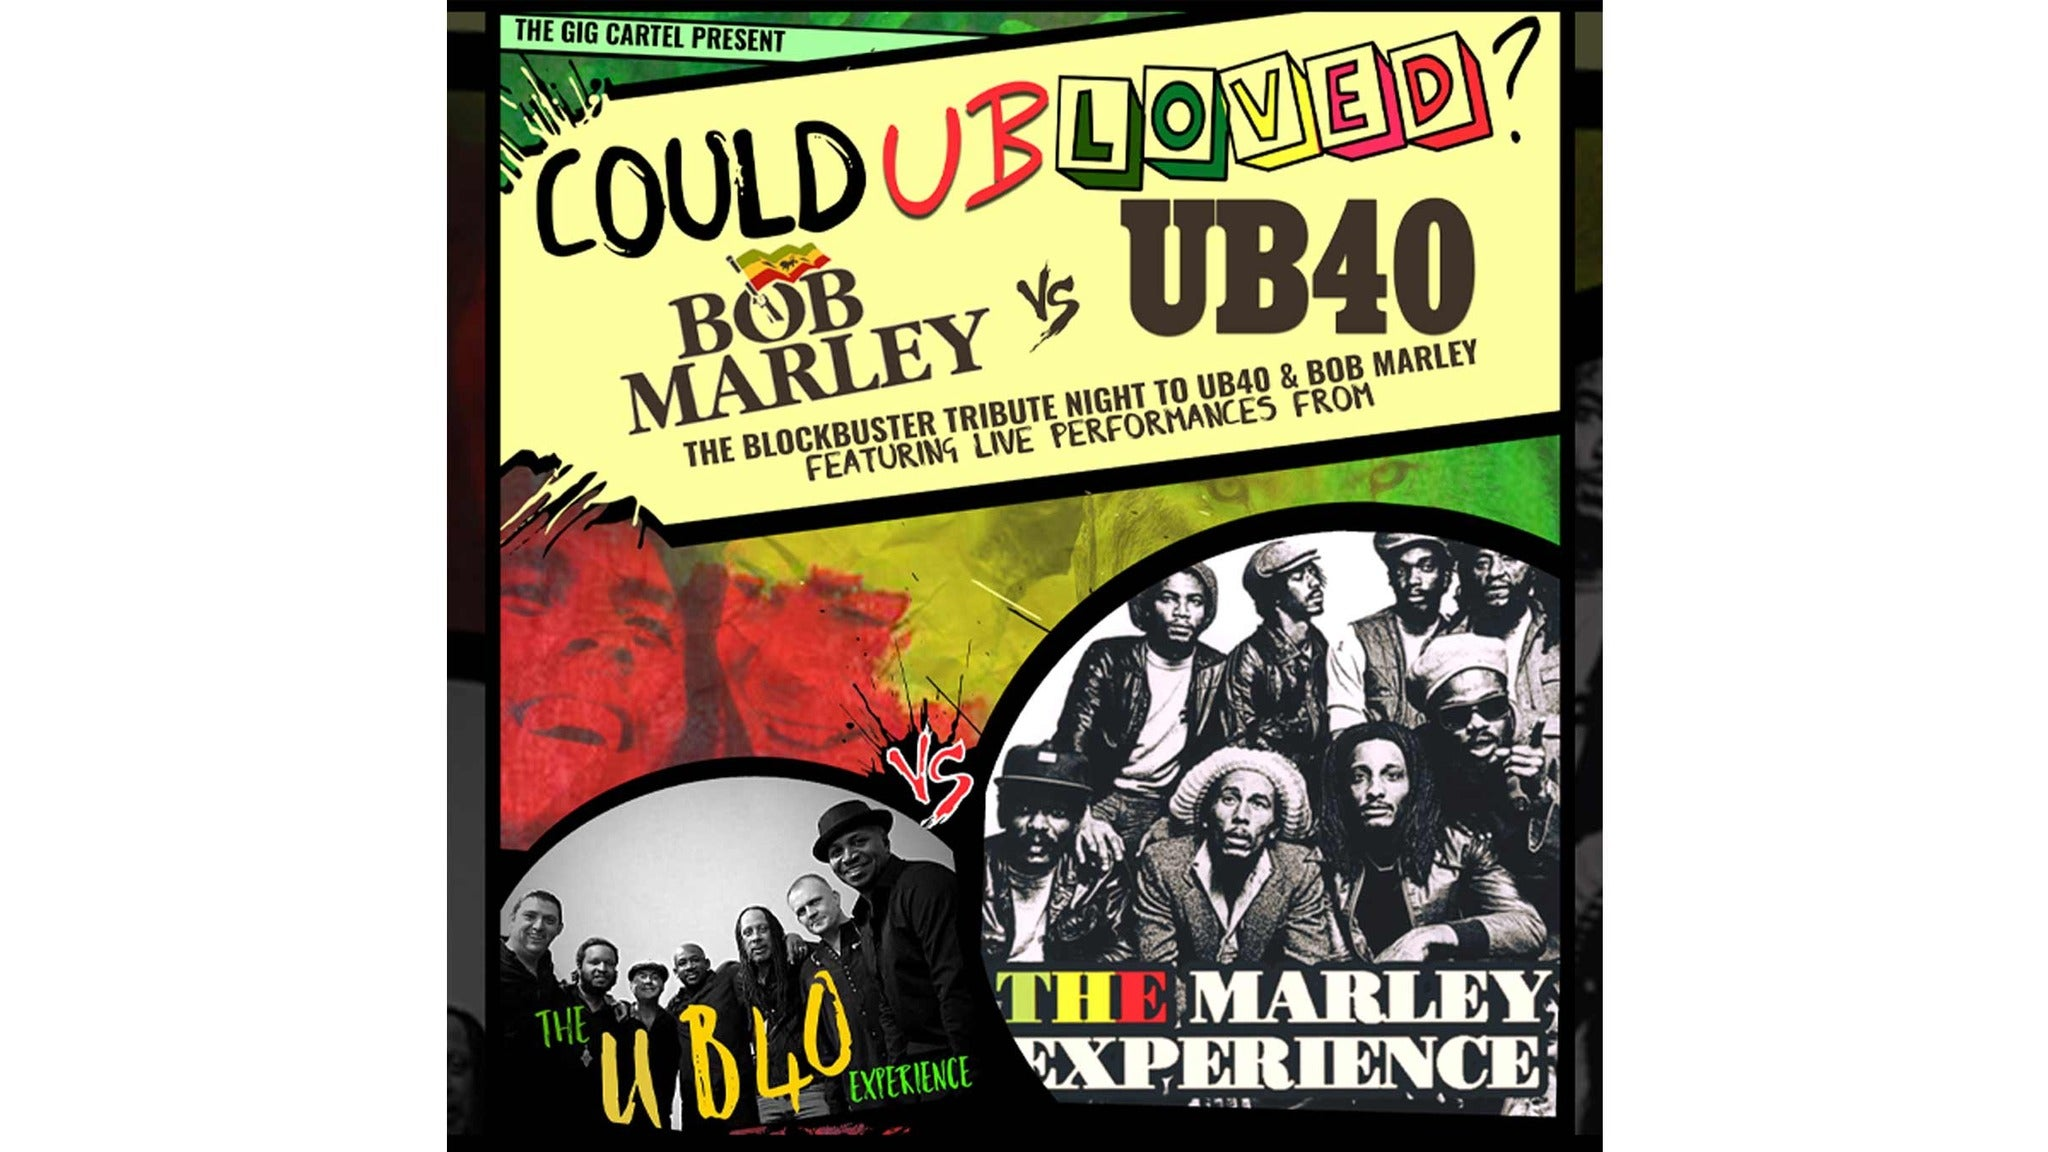 The Marley Experience & the Ub40 Experience tickets (Copyright © Ticketmaster)